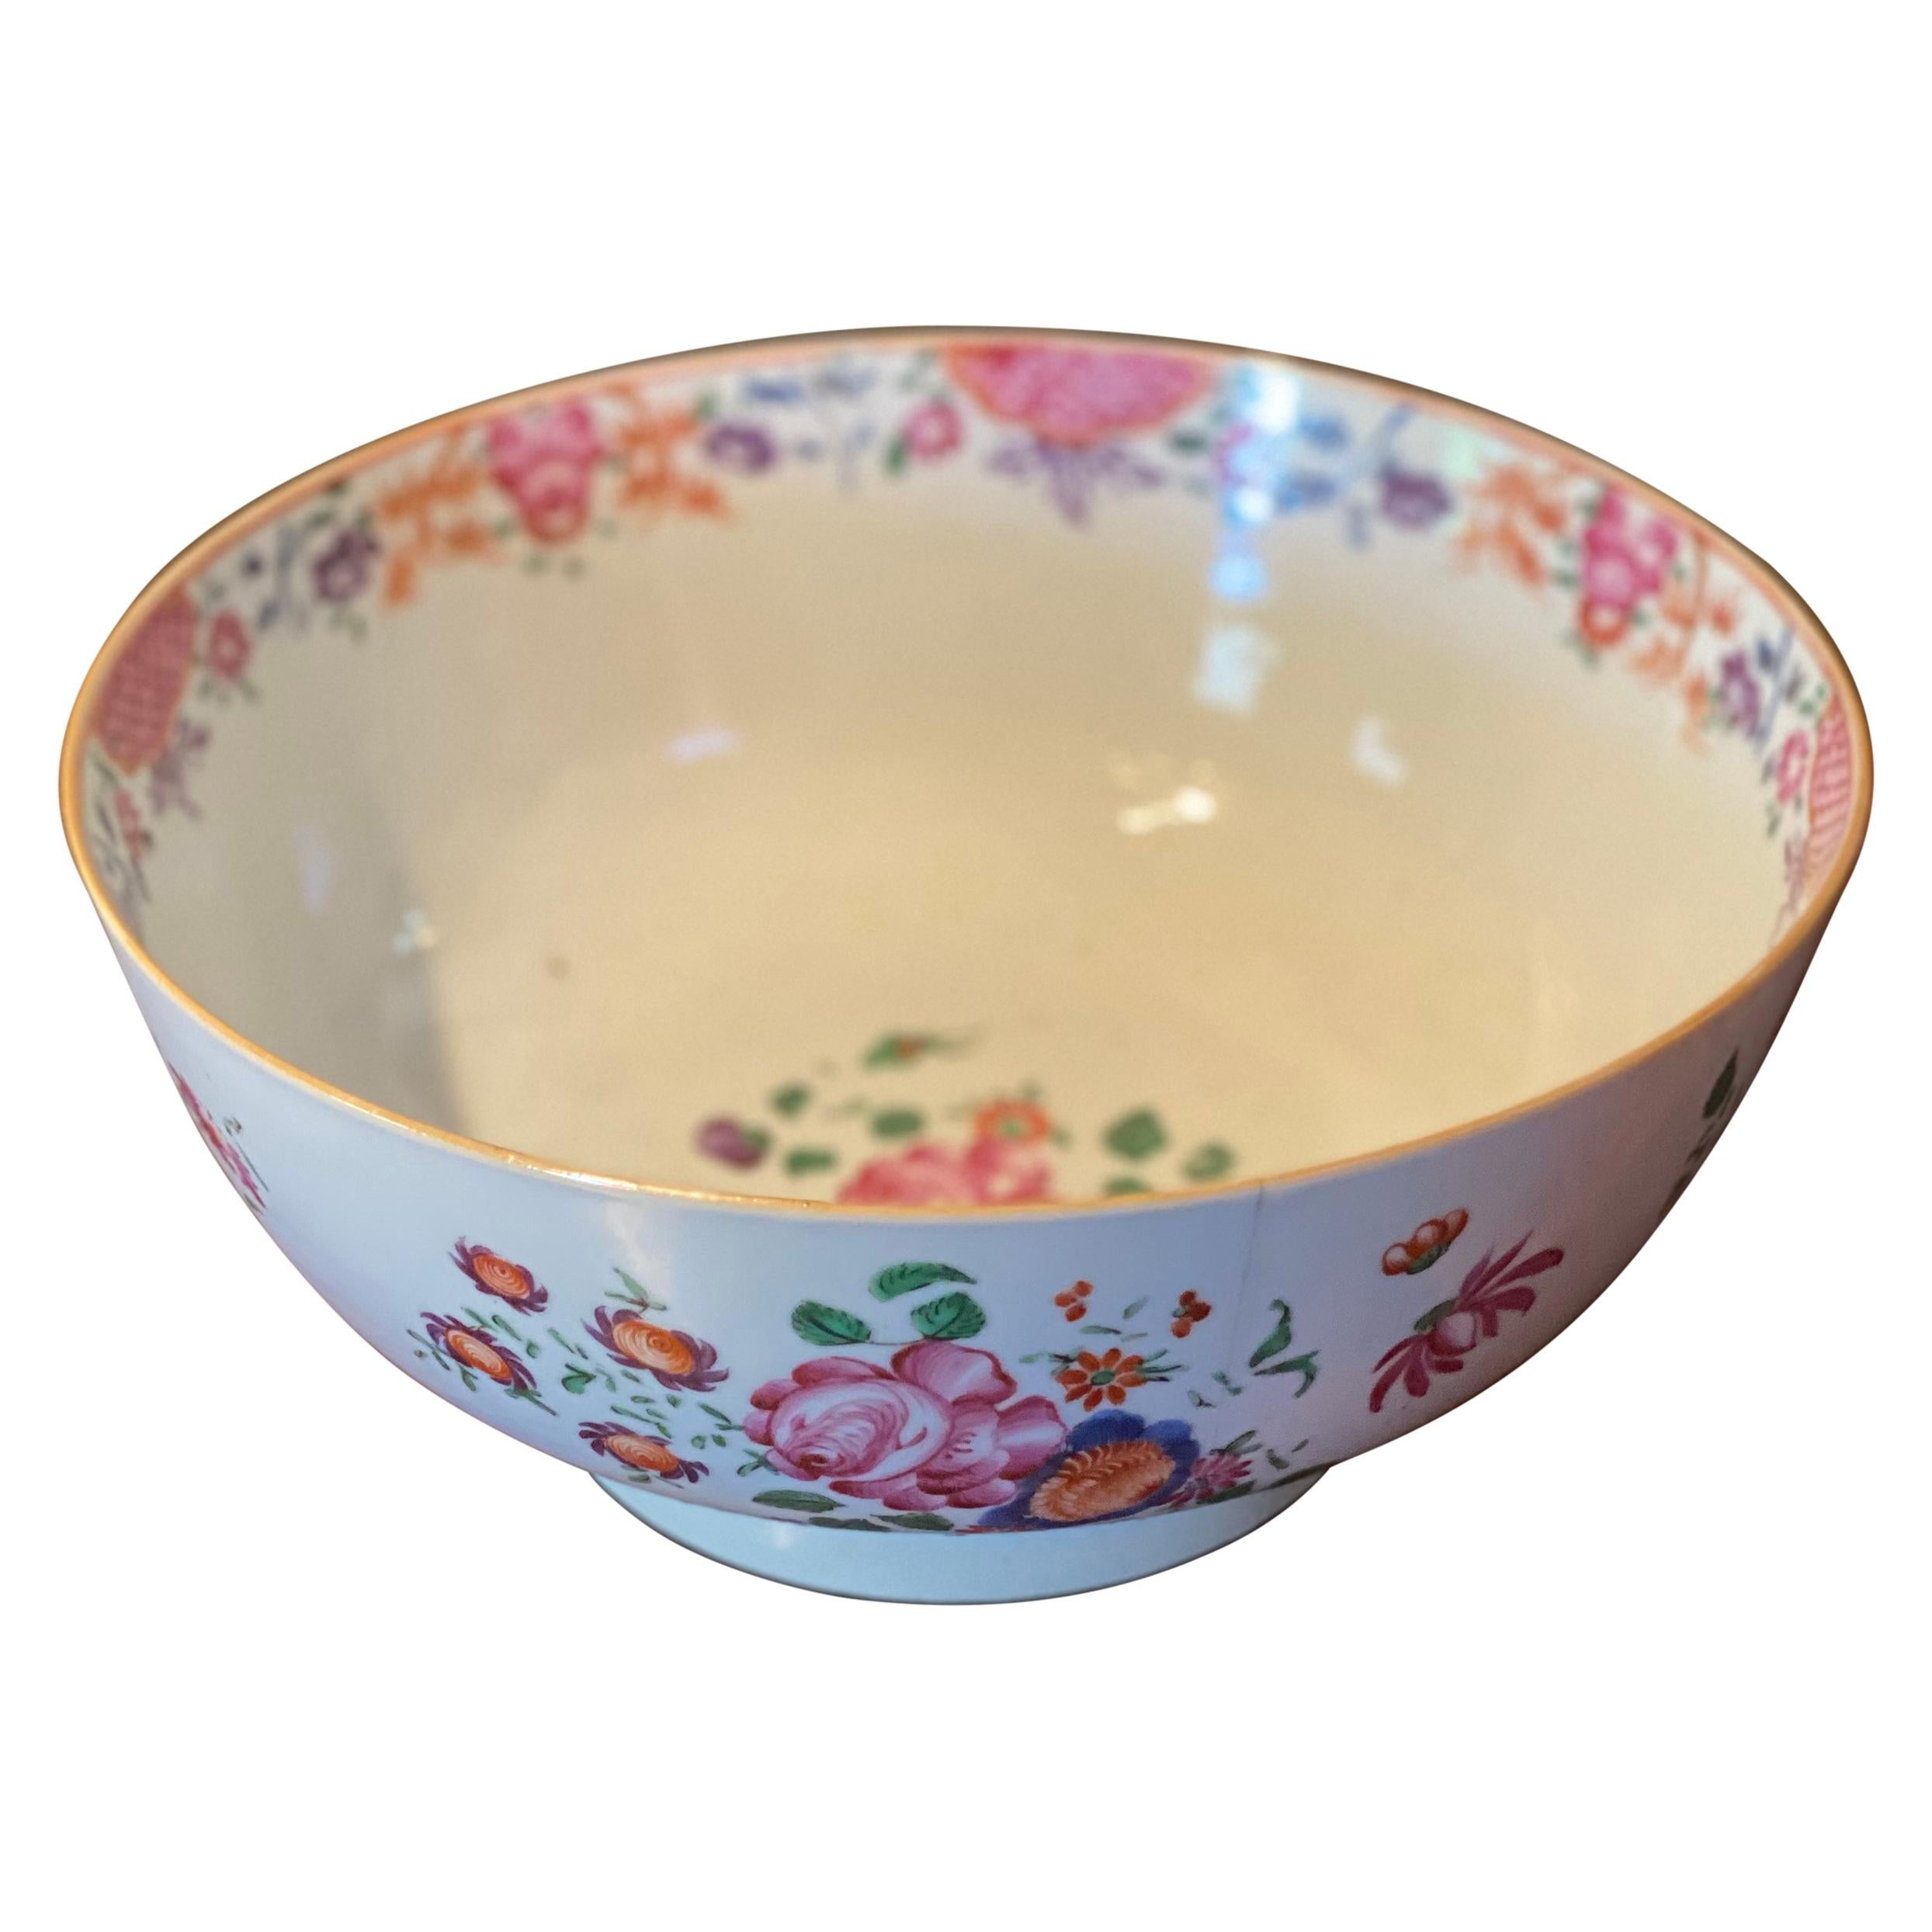 Late 18th- Early 19th Century Chinese Export Punch Bowl with Flowers